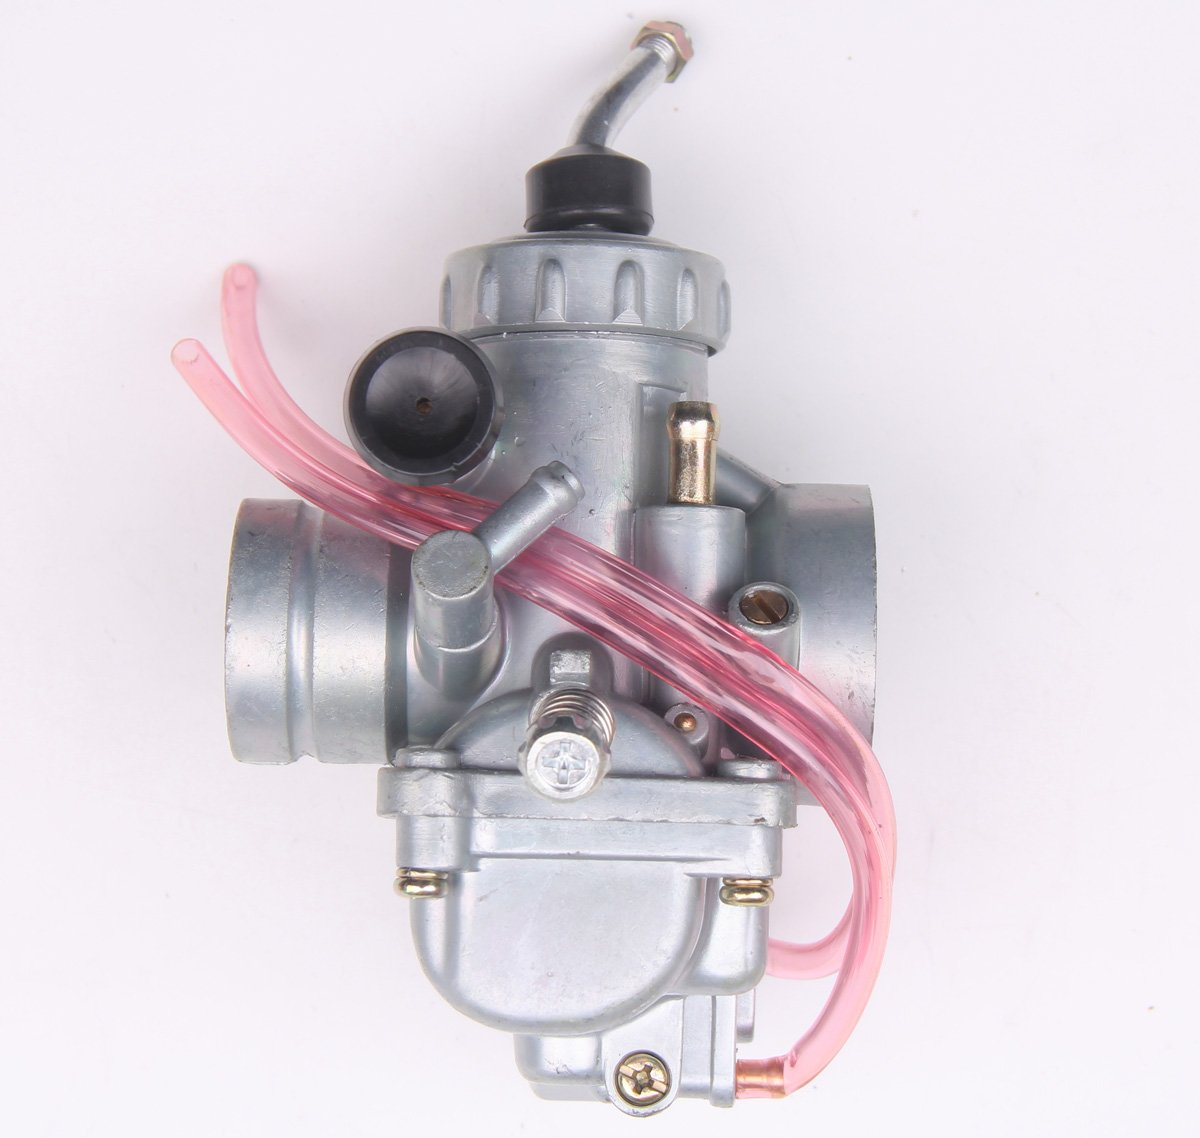 New Carb Carburetor For KAWASAKI KX60 1983-2003 Goodbest